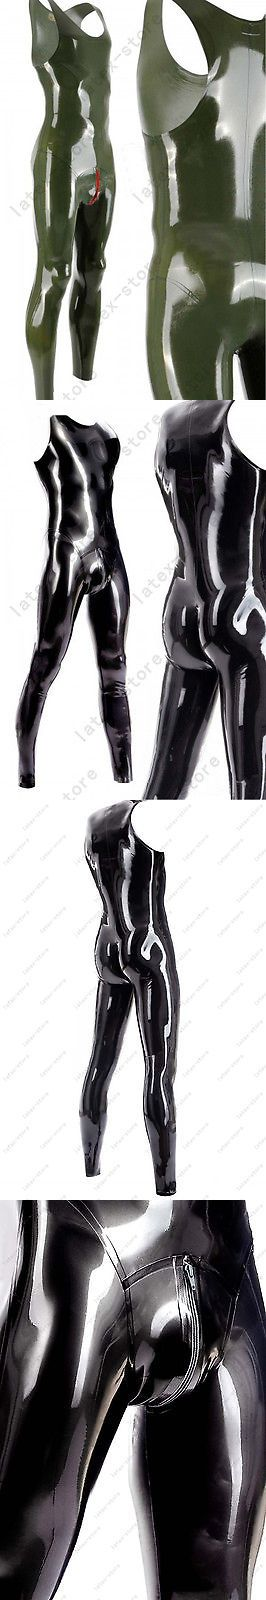 Other Mens Clothing 313: 027 Latex Gummi Rubber Male Catsuit Bodysuit Unitard Cod Piece Customized 0.4Mm -> BUY IT NOW ONLY: $115 on eBay!